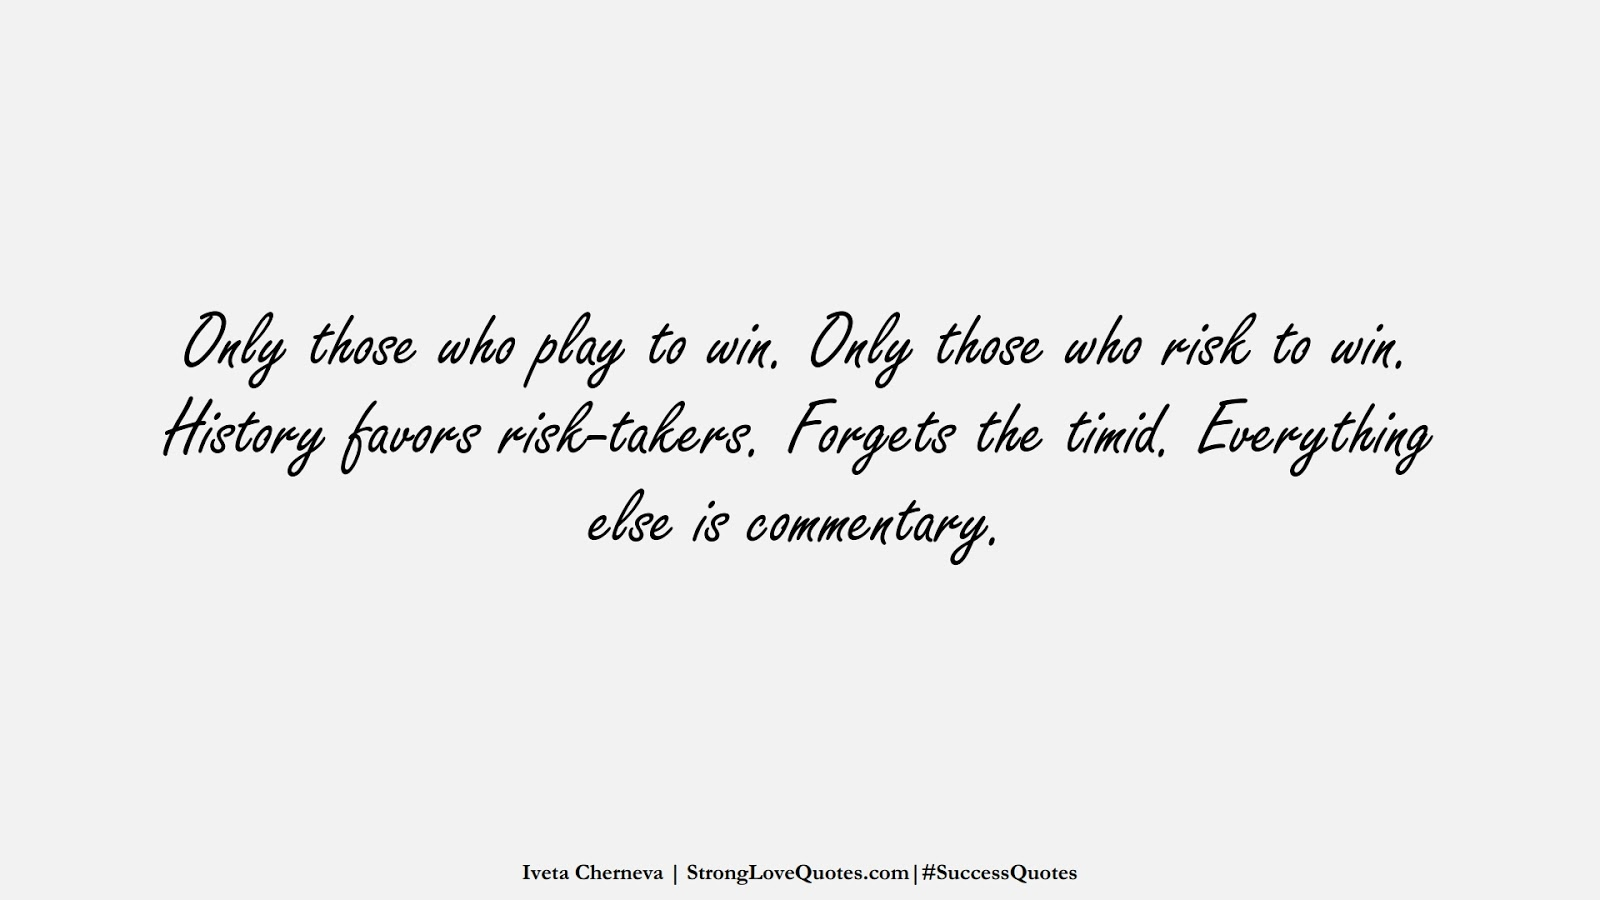 Only those who play to win. Only those who risk to win. History favors risk-takers. Forgets the timid. Everything else is commentary. (Iveta Cherneva);  #SuccessQuotes